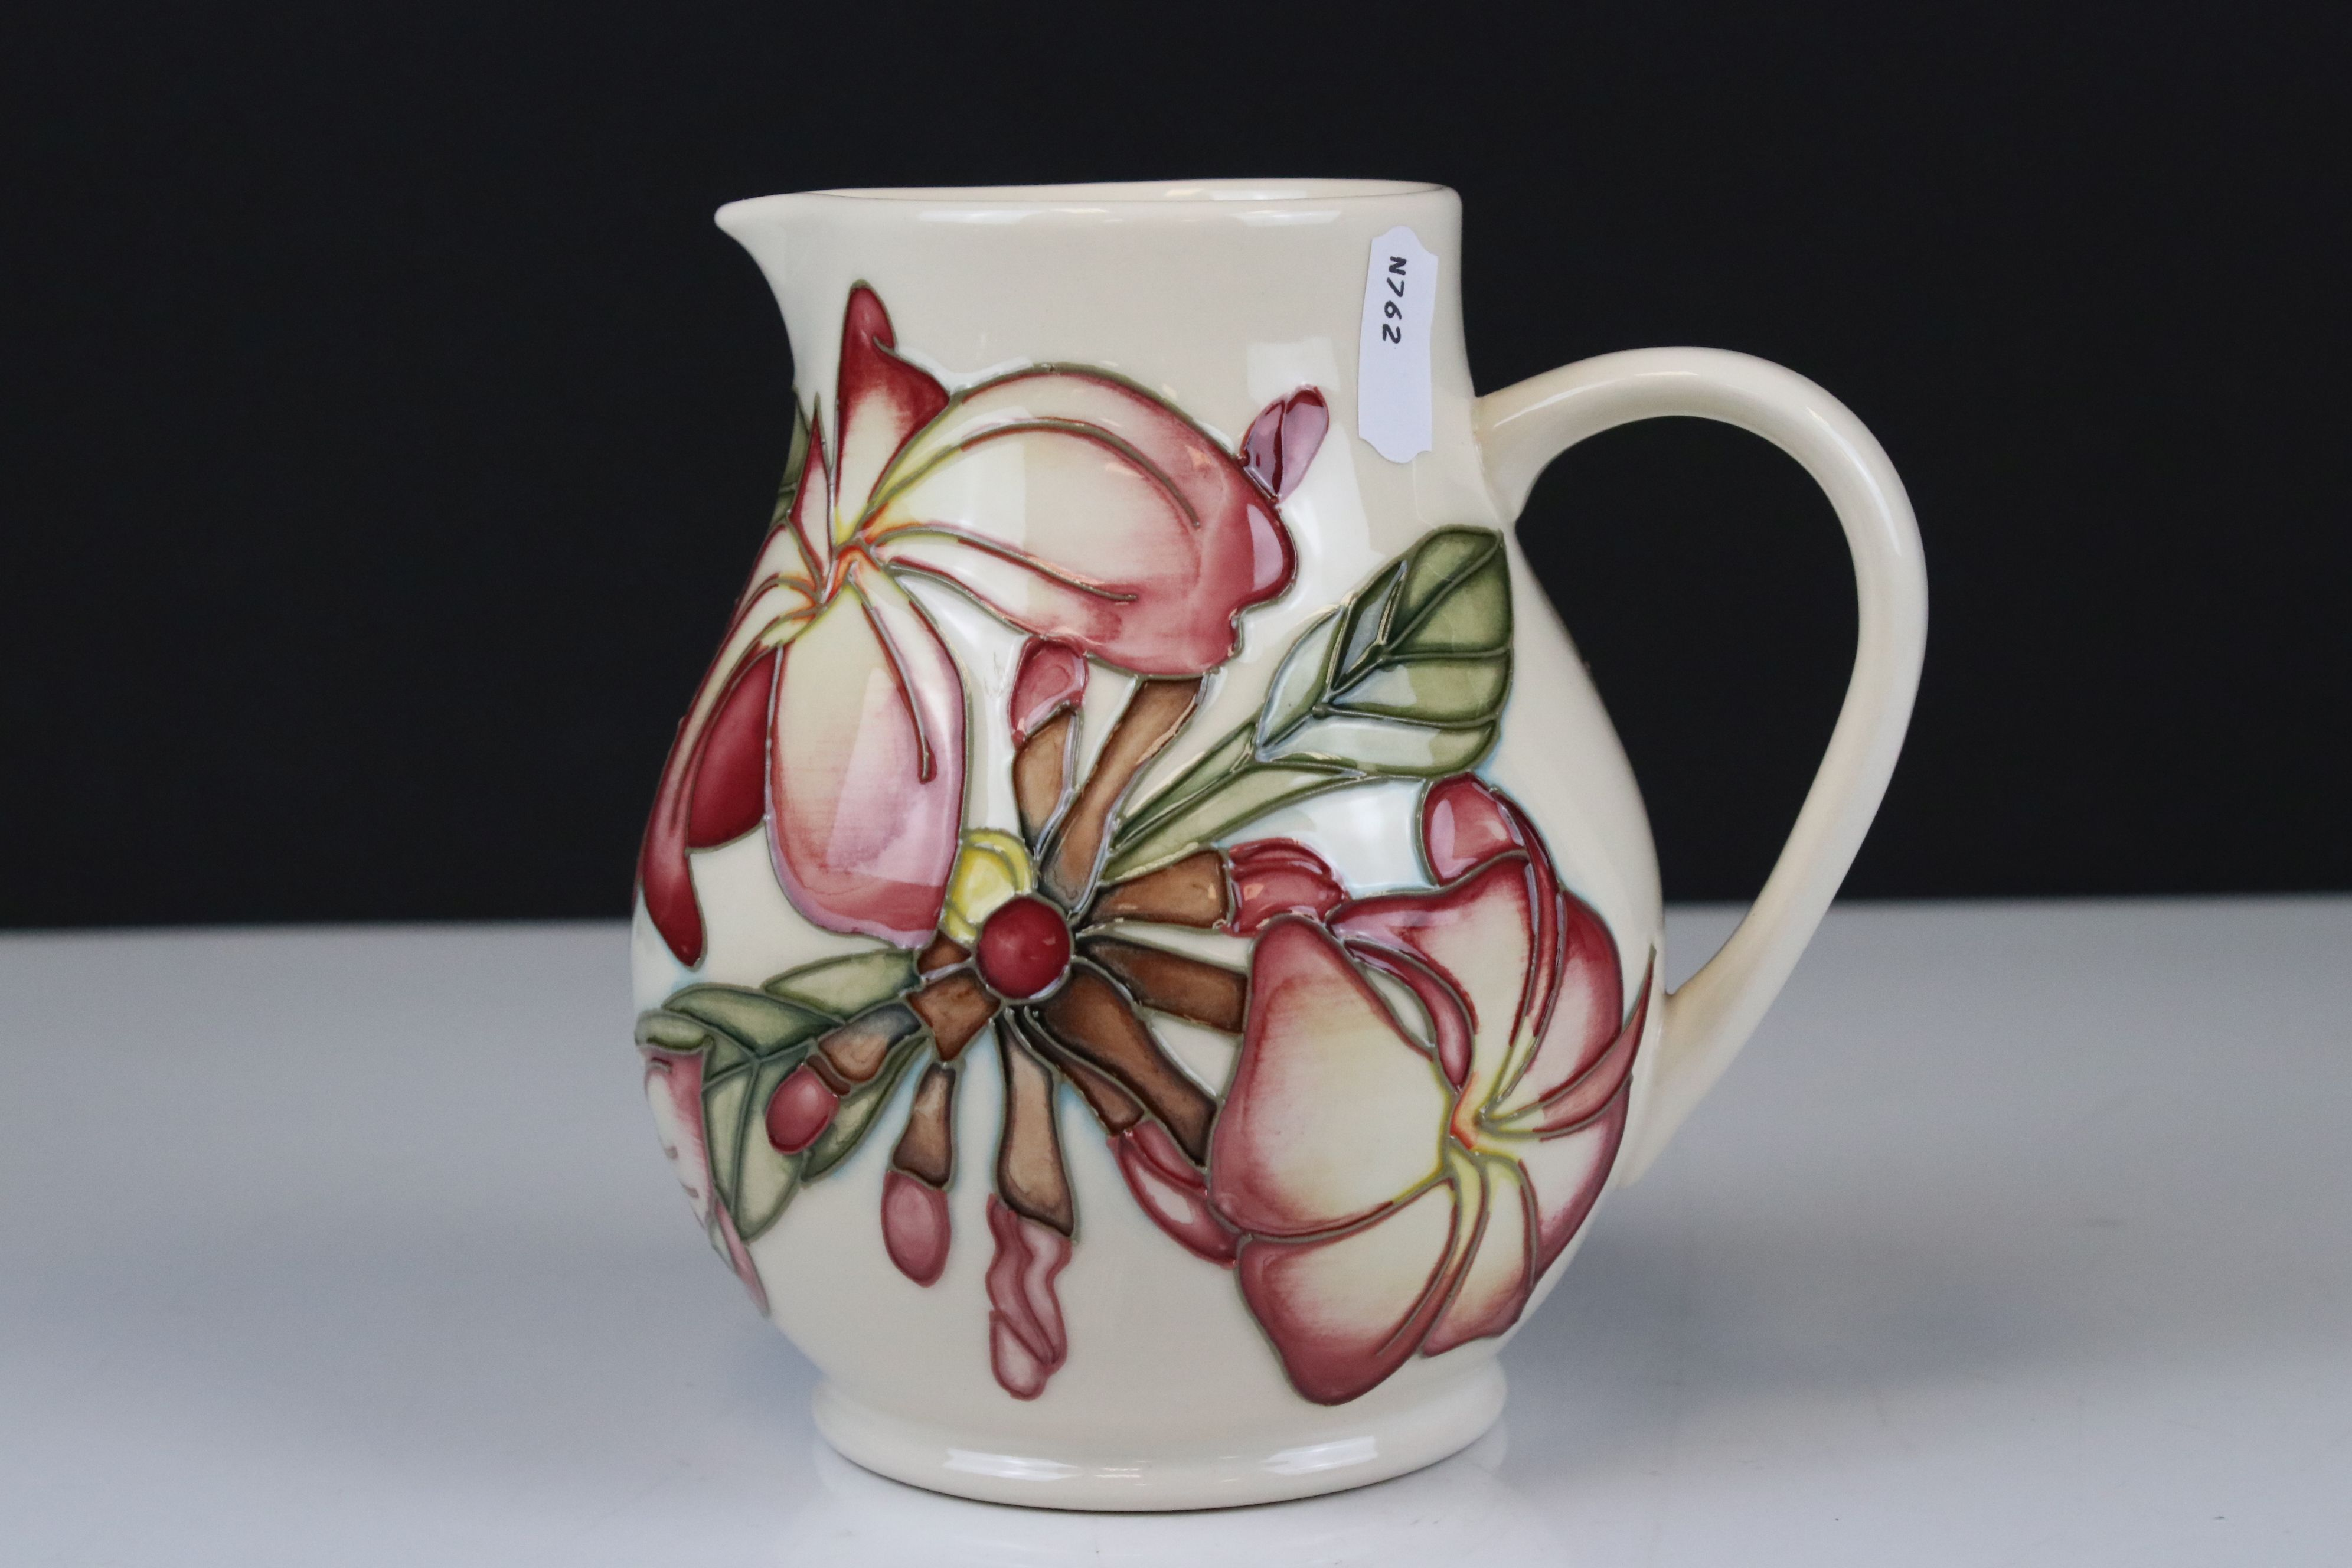 Moorcroft Jug in the Frangipani Plumeria pattern on a white ground, 15cms high - Image 2 of 4